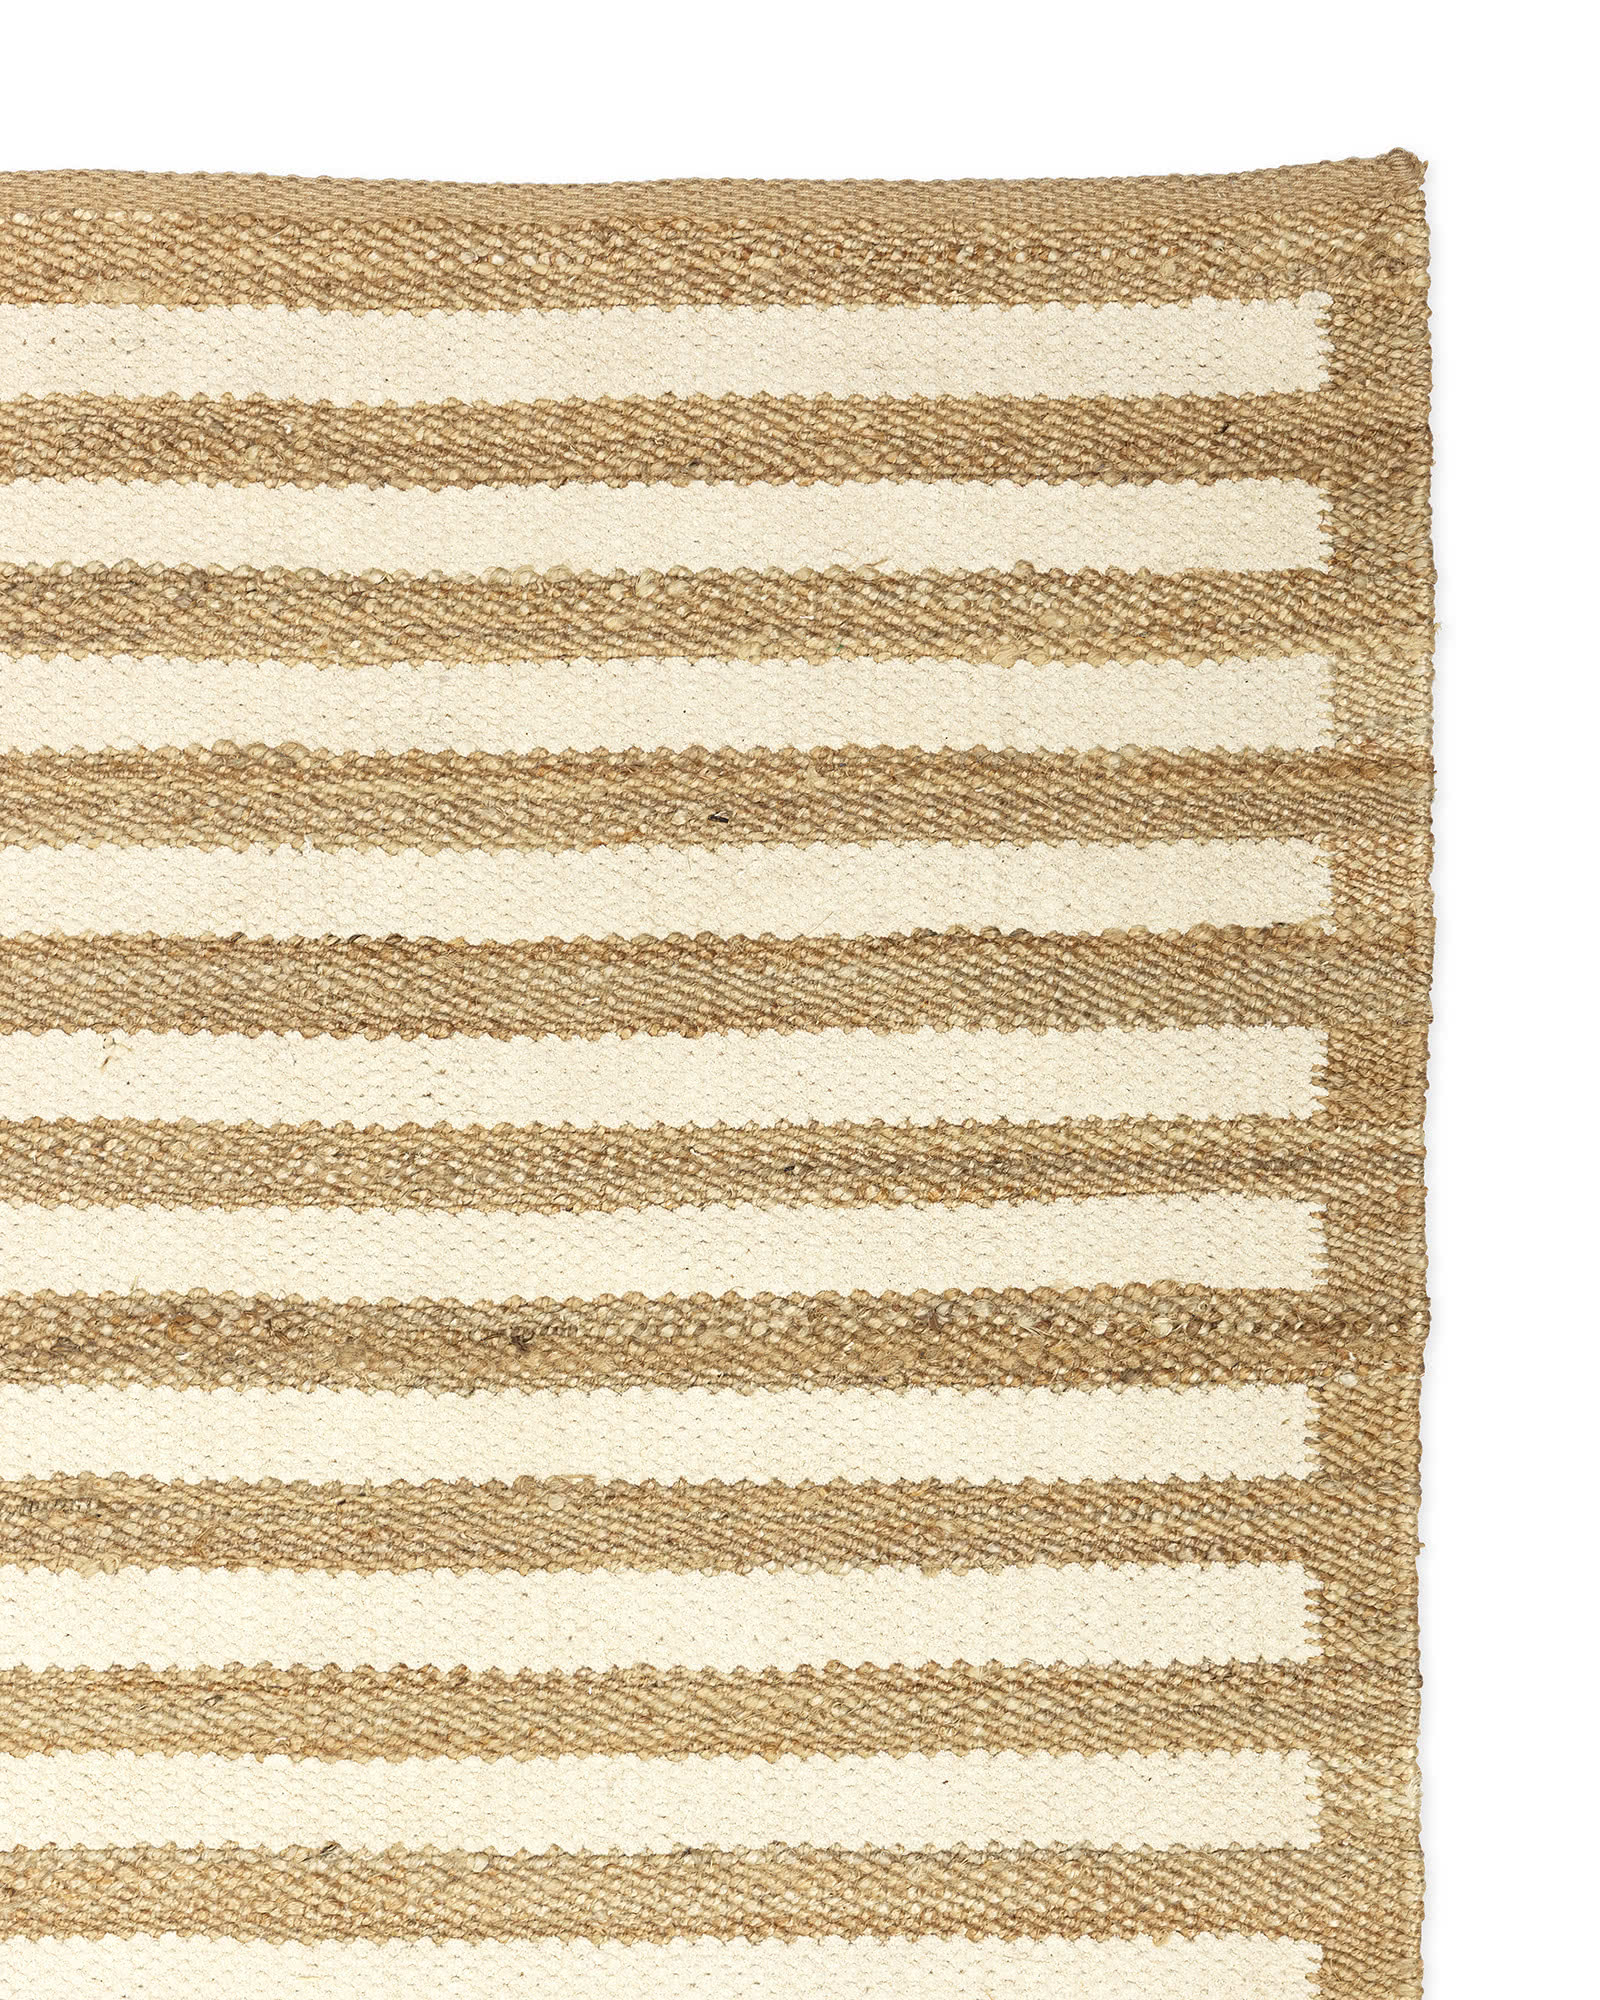 Beachside Rug,